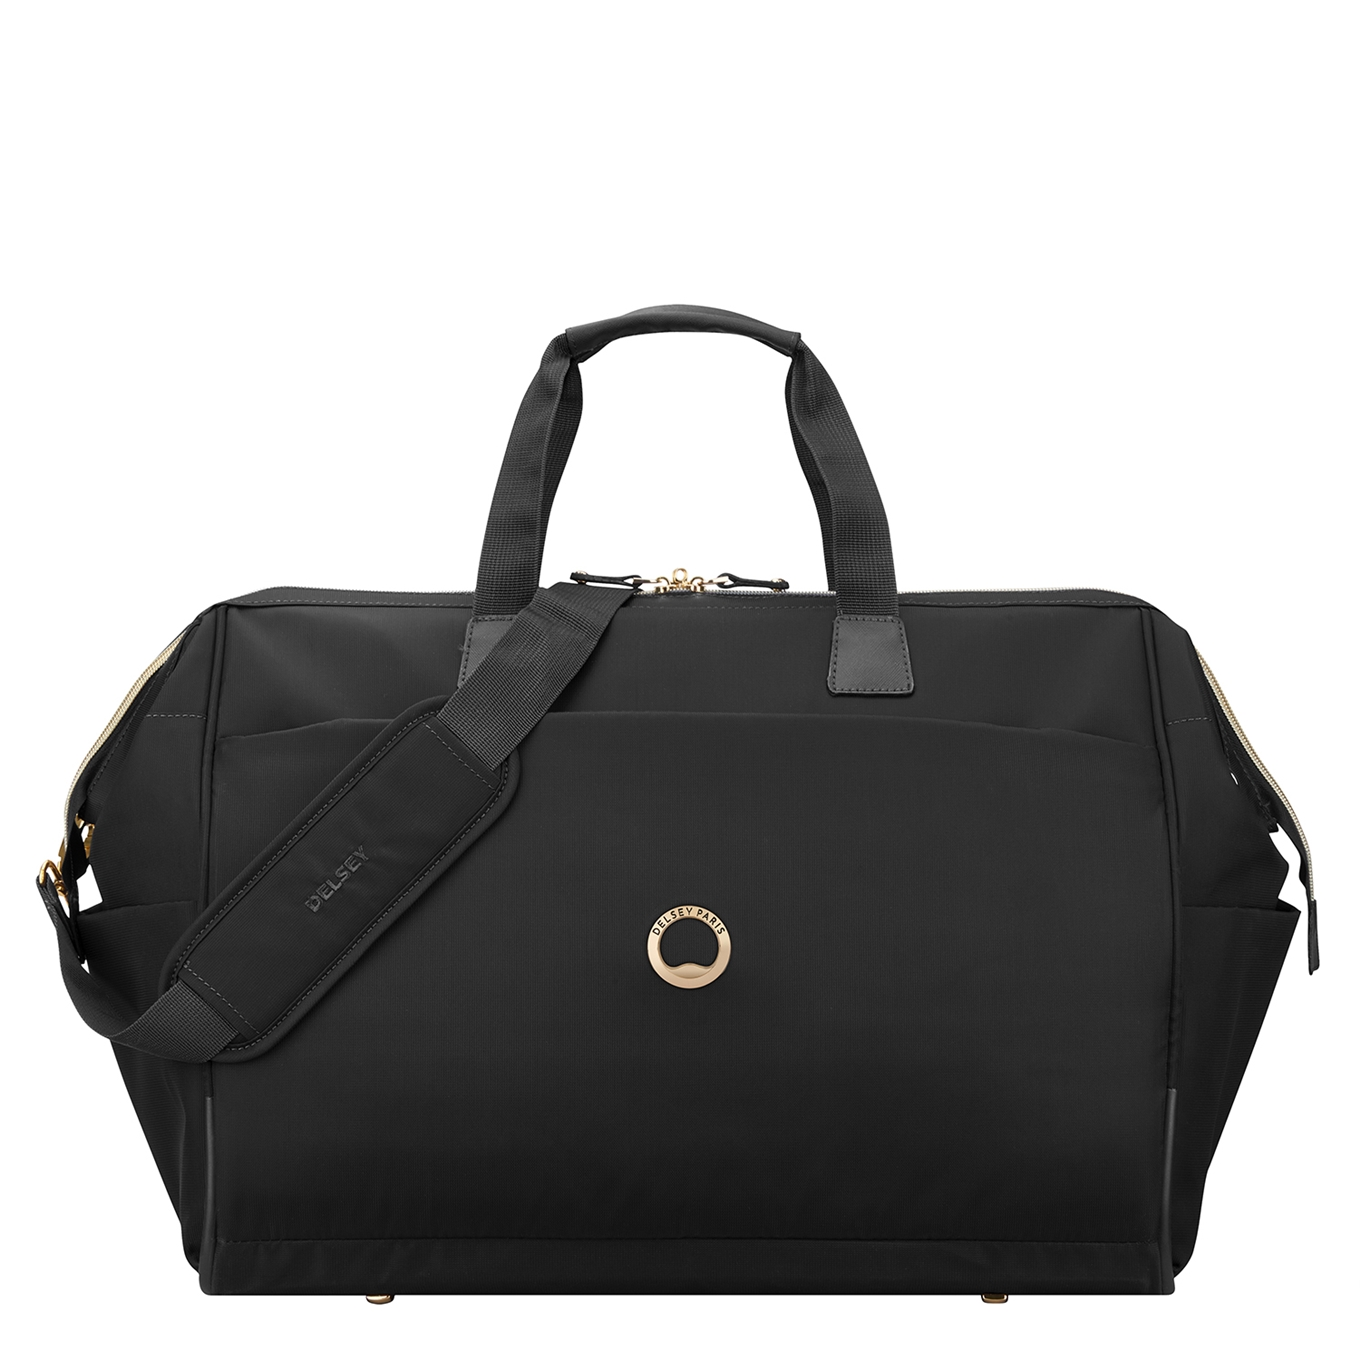 Delsey Montrouge Cabin Duffle Bag black Weekendtas <br/>€ 71.95 <br/> <a href='https://tc.tradetracker.net/?c=15082&m=779702&a=107398&u=http%3A%2F%2Fwww.travelbags.nl%3A80%2Fdelsey-montrouge-cabin-duffle-bag-black.html' target='_blank'>Bestellen</a>